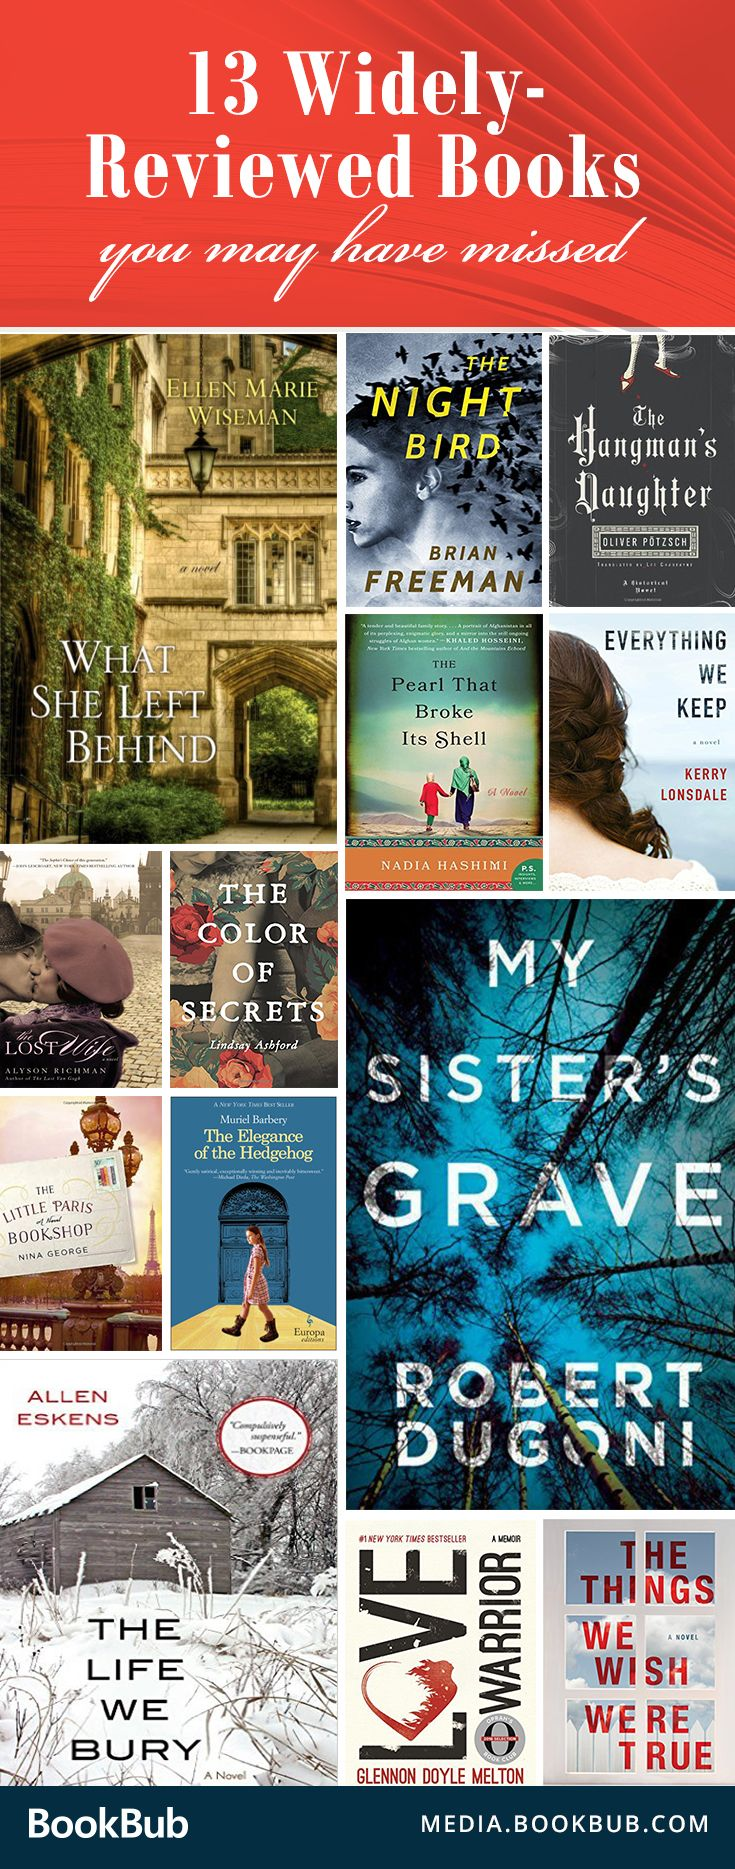 13 widely reviewed books you may not have read yet. From WWII dramas to compelling psychological thrillers, these popular books are worth reading in 2017.